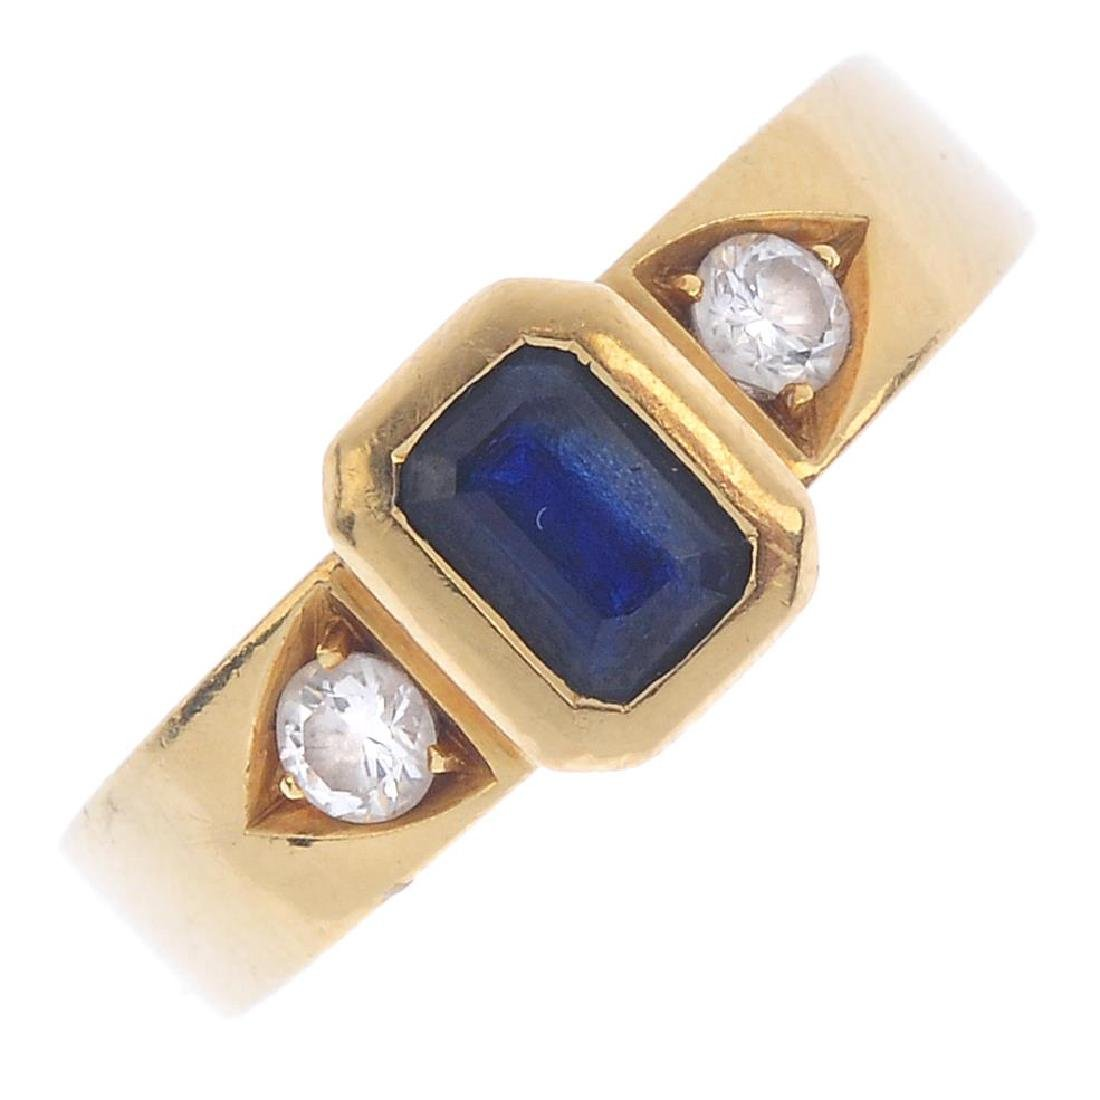 A sapphire and diamond ring. Designed as a